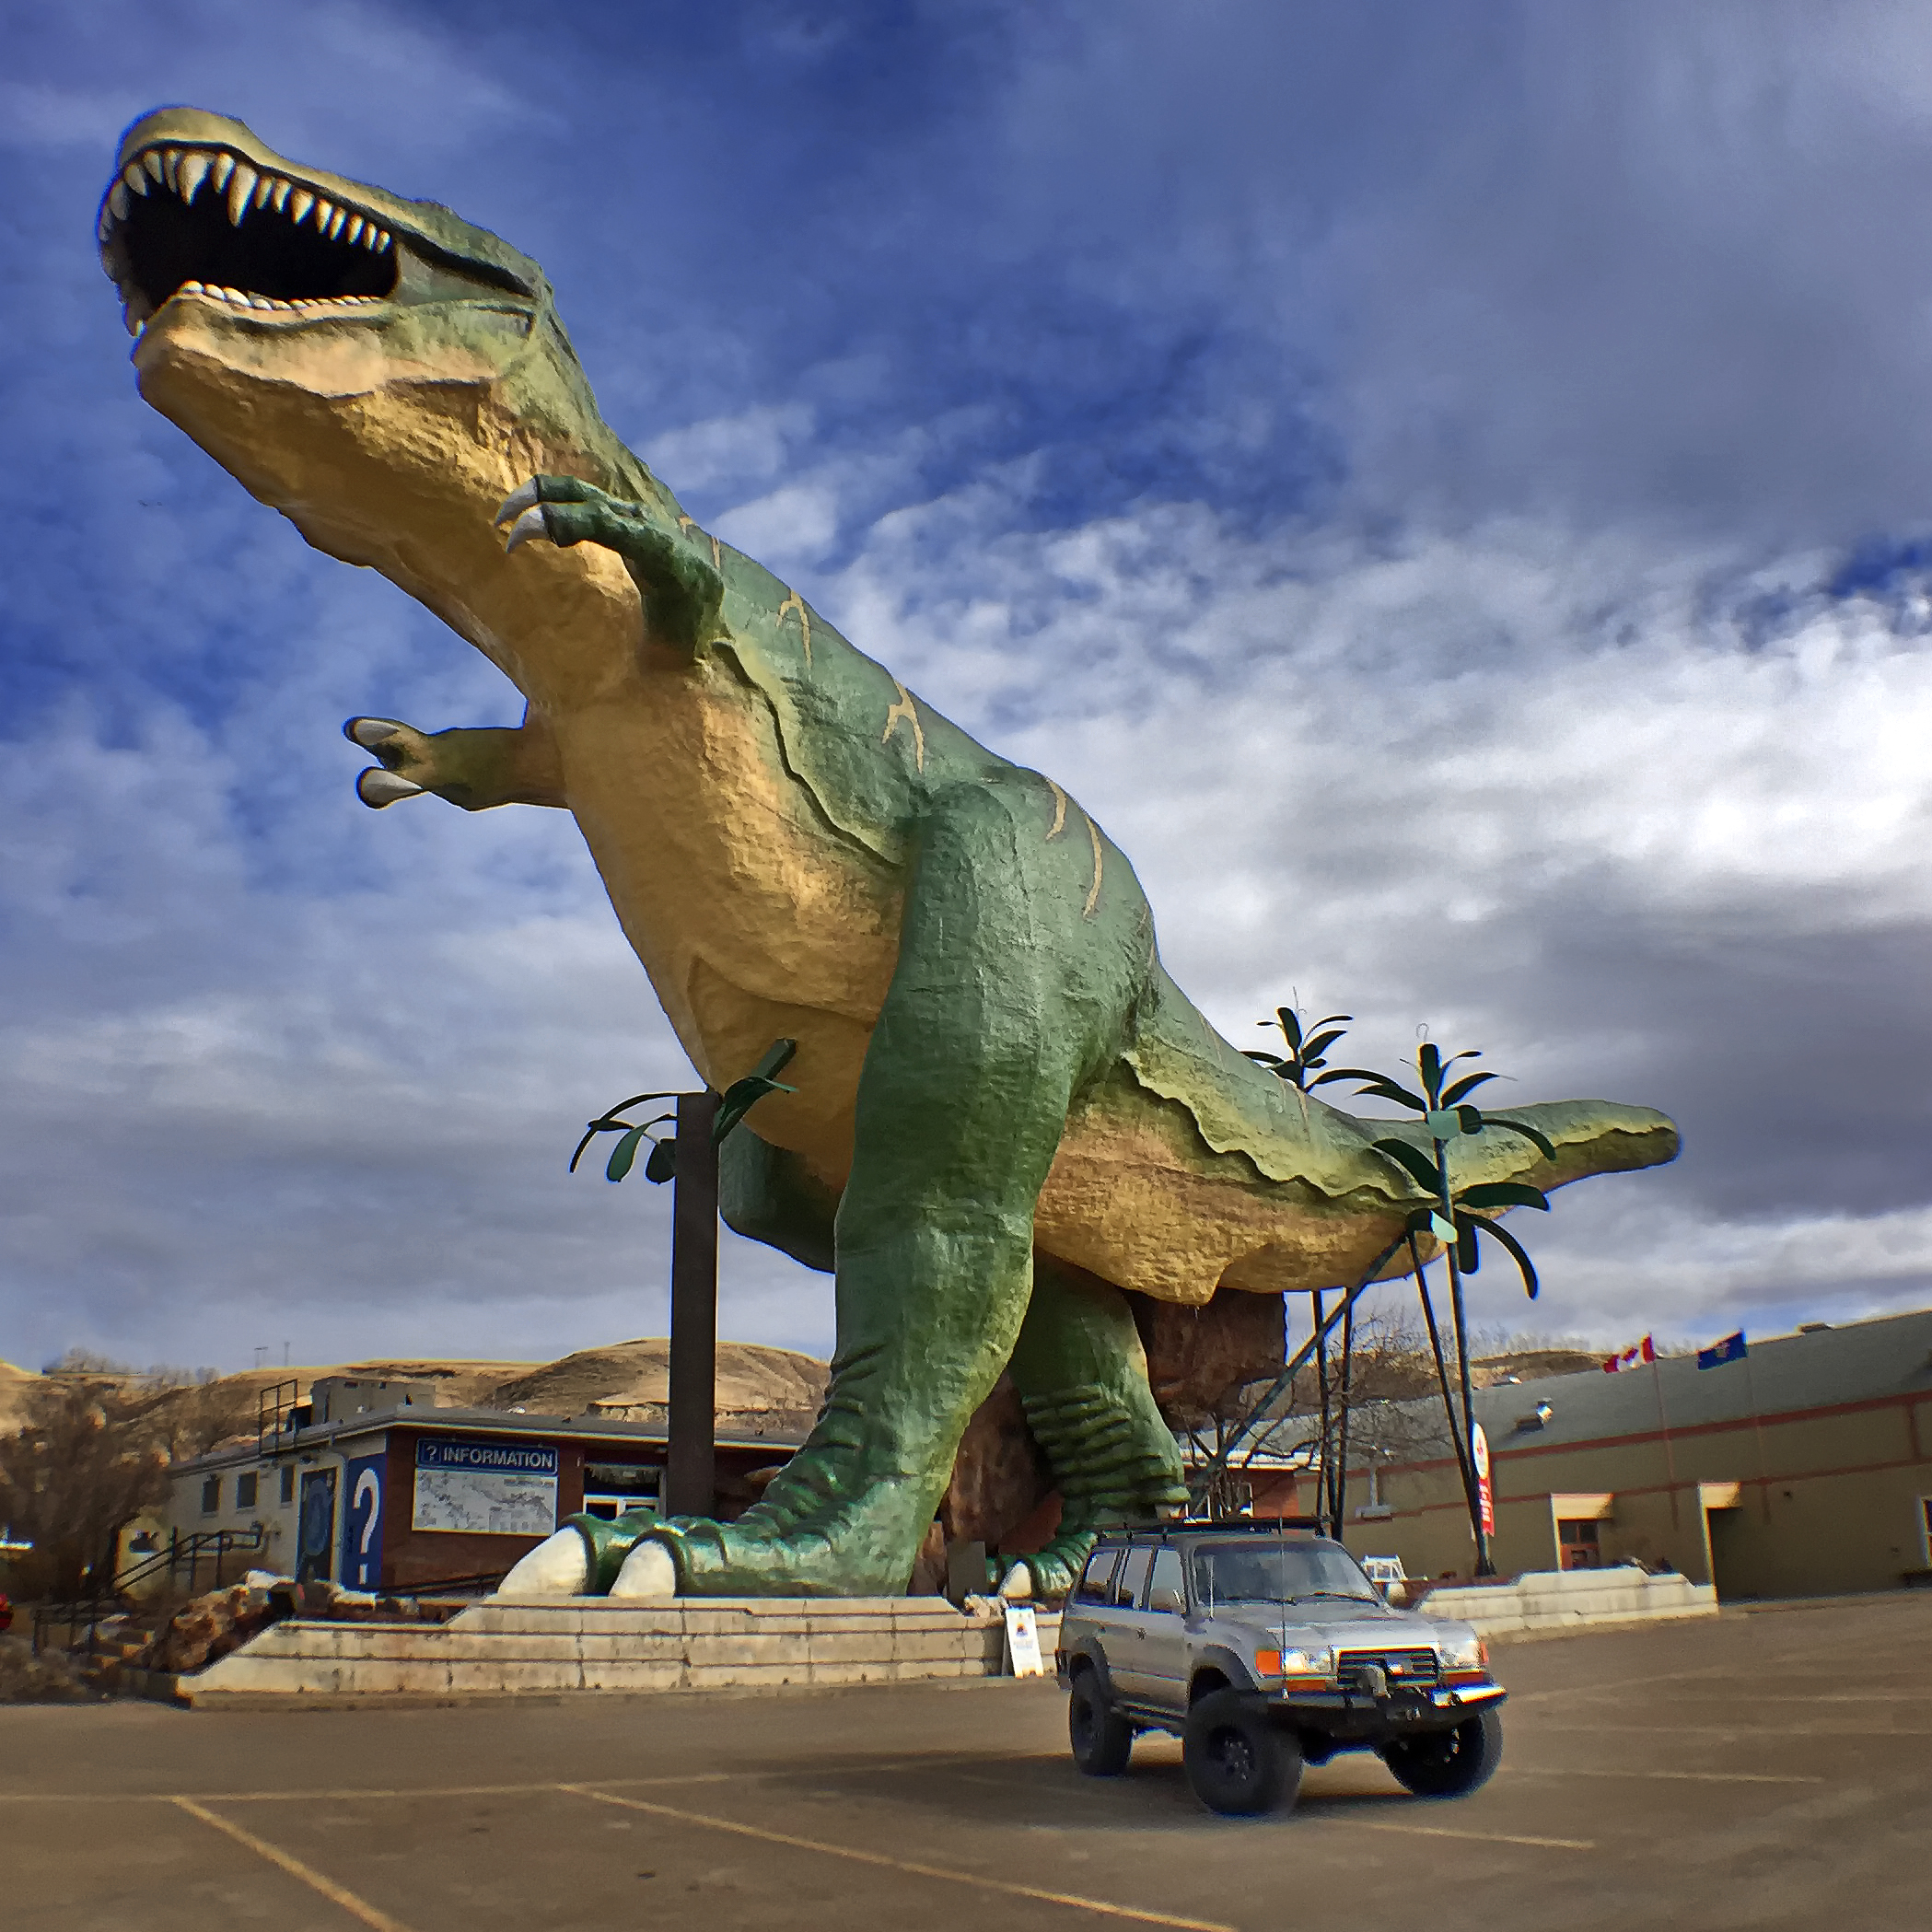 World's Largest Dinosaur - Photo Taken with an iPhone